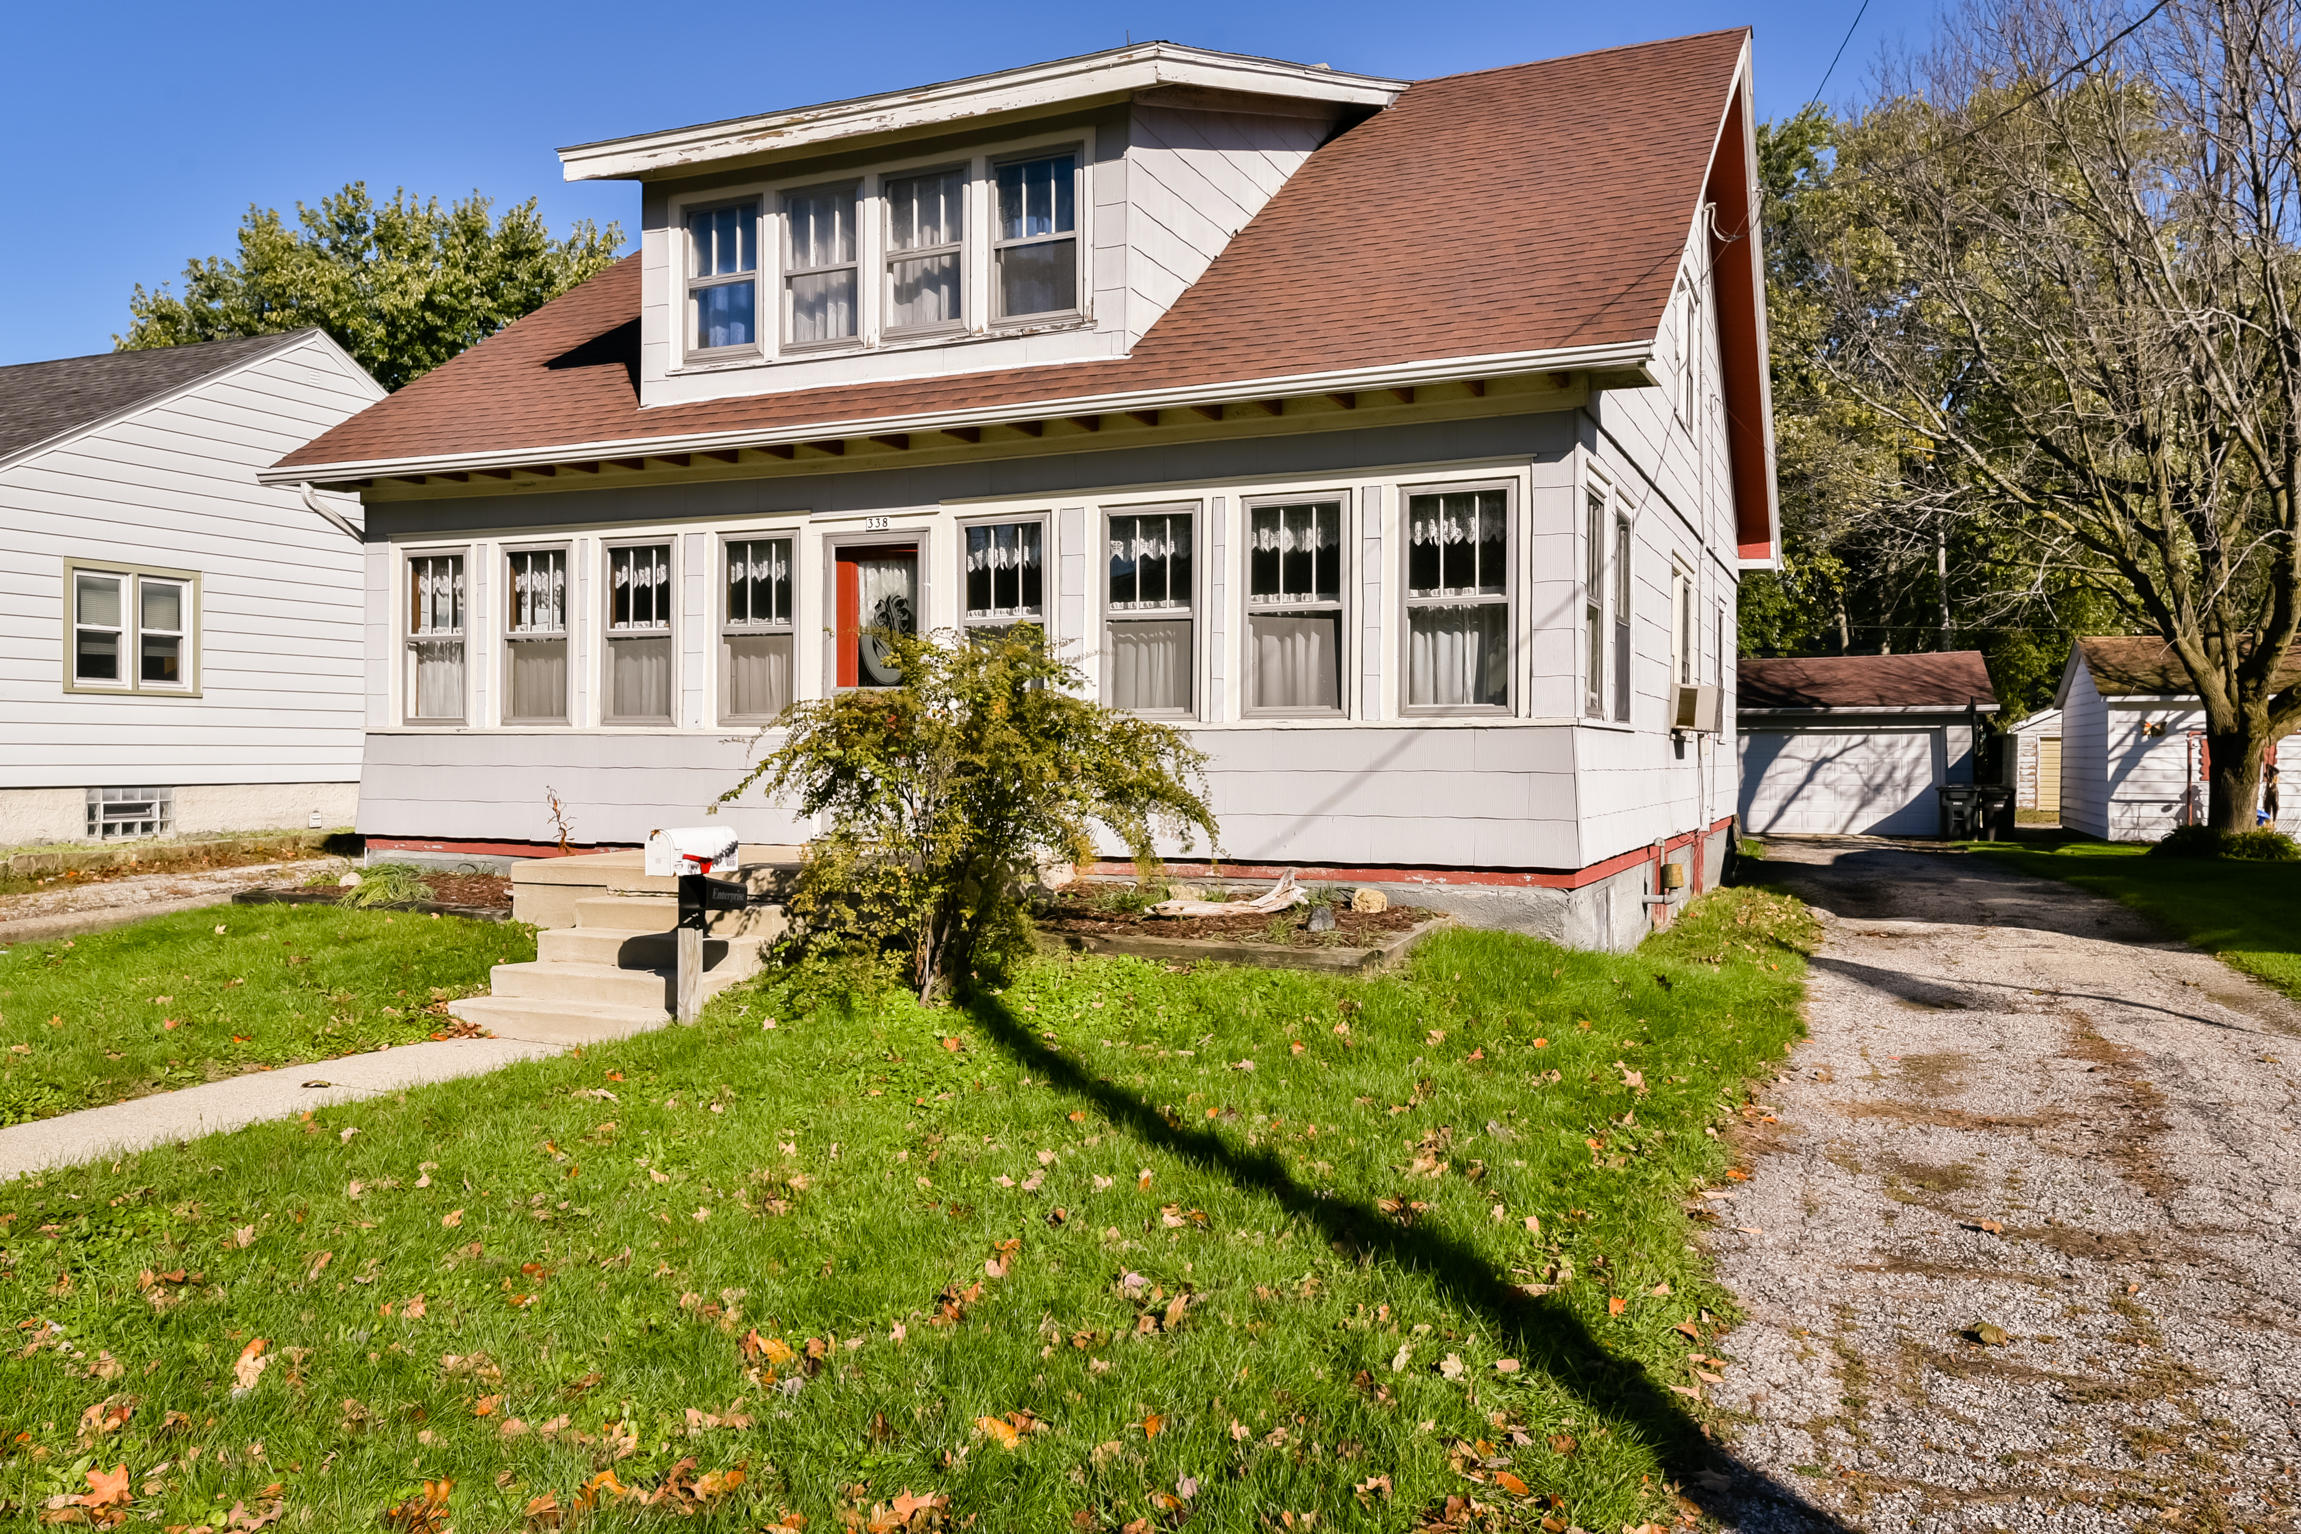 338 5th St, Oconomowoc, Wisconsin 53066, 3 Bedrooms Bedrooms, 7 Rooms Rooms,2 BathroomsBathrooms,Single-Family,For Sale,5th St,1610570